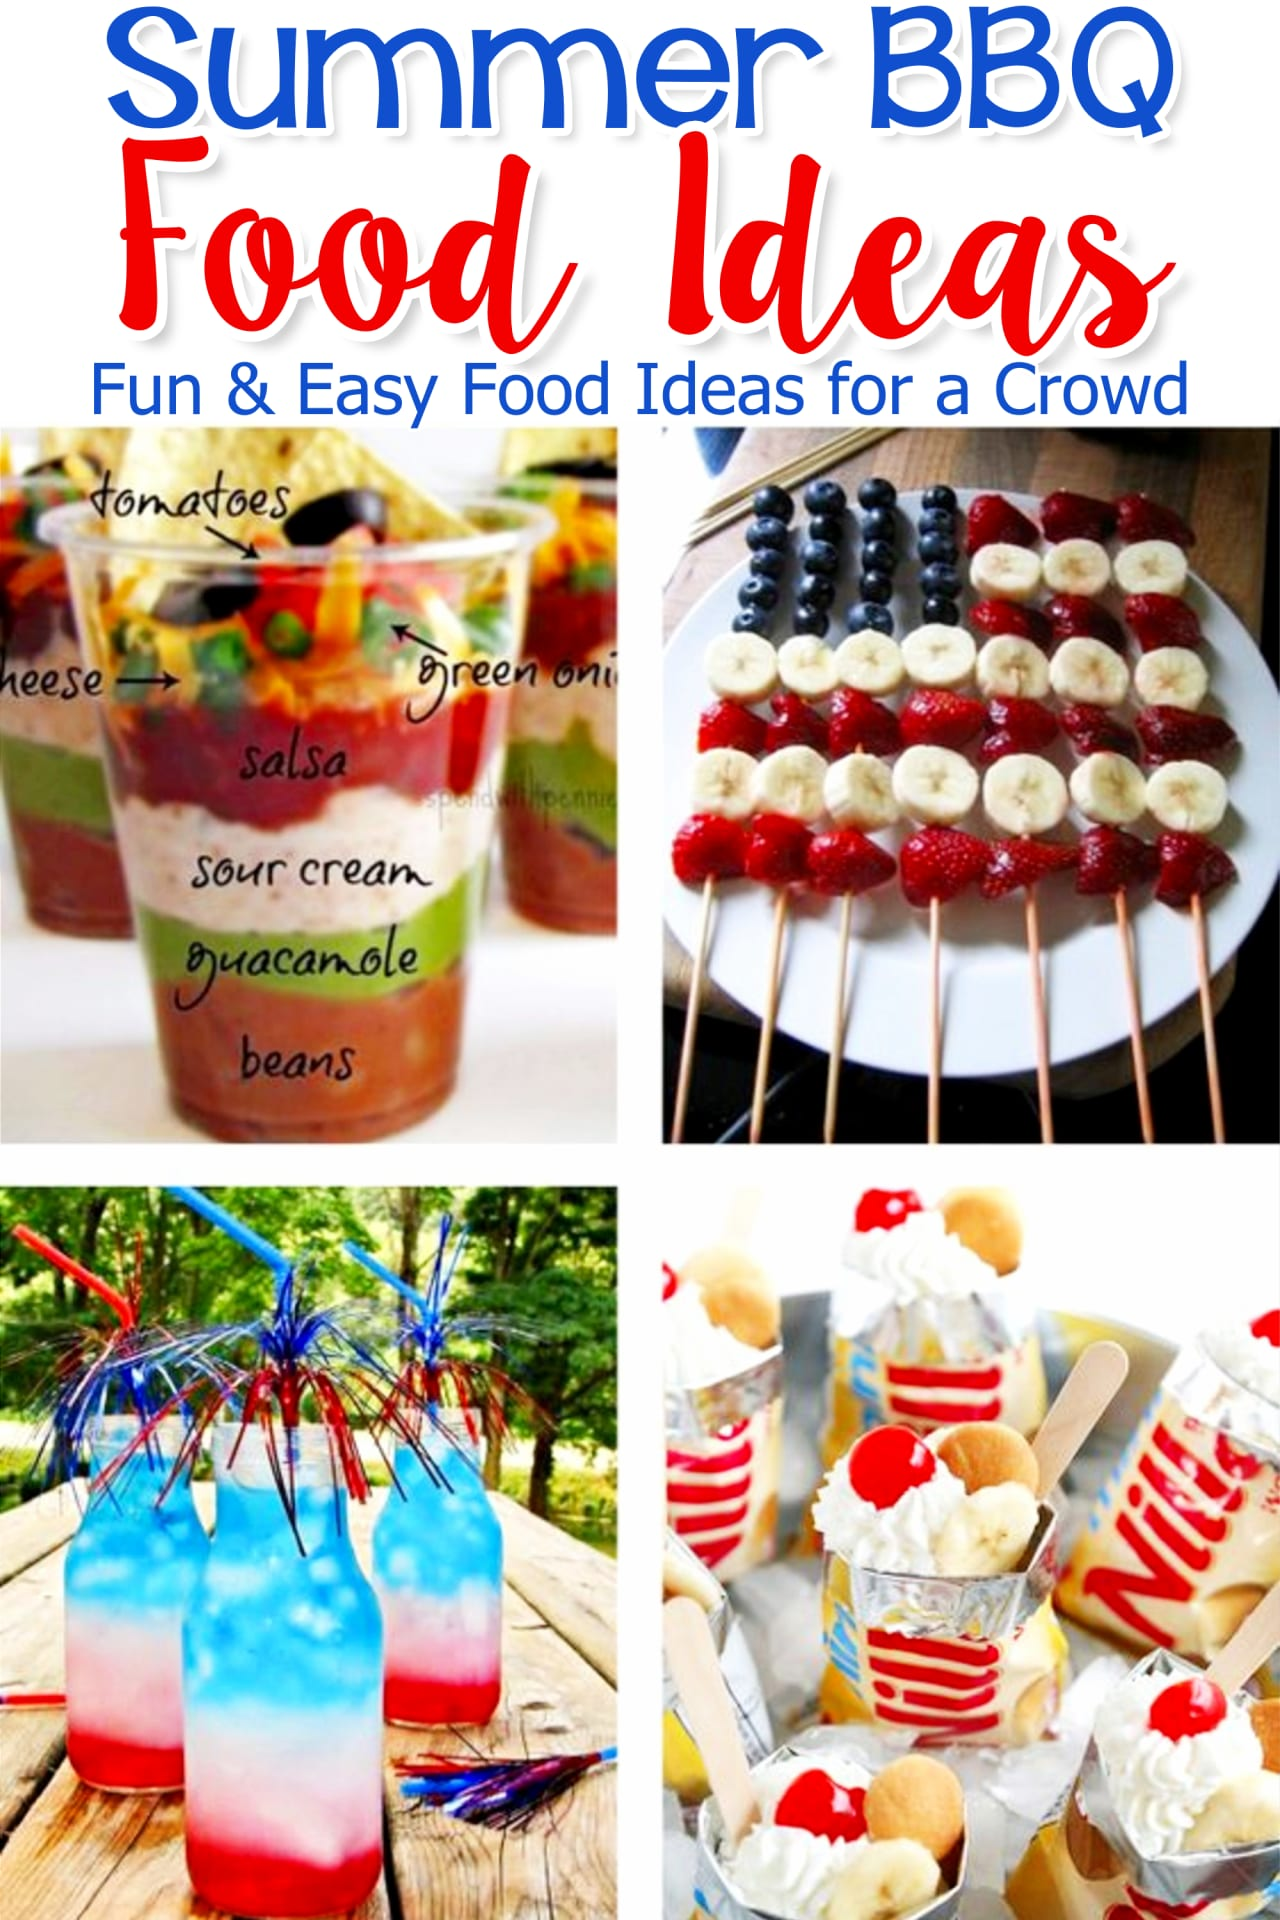 Summer BBQ Party Food Ideas for Entertaining a Crowd! Summer Neighborhood Block Party Food Ideas - simple and easy outdoor summer party food ideas for a crowd